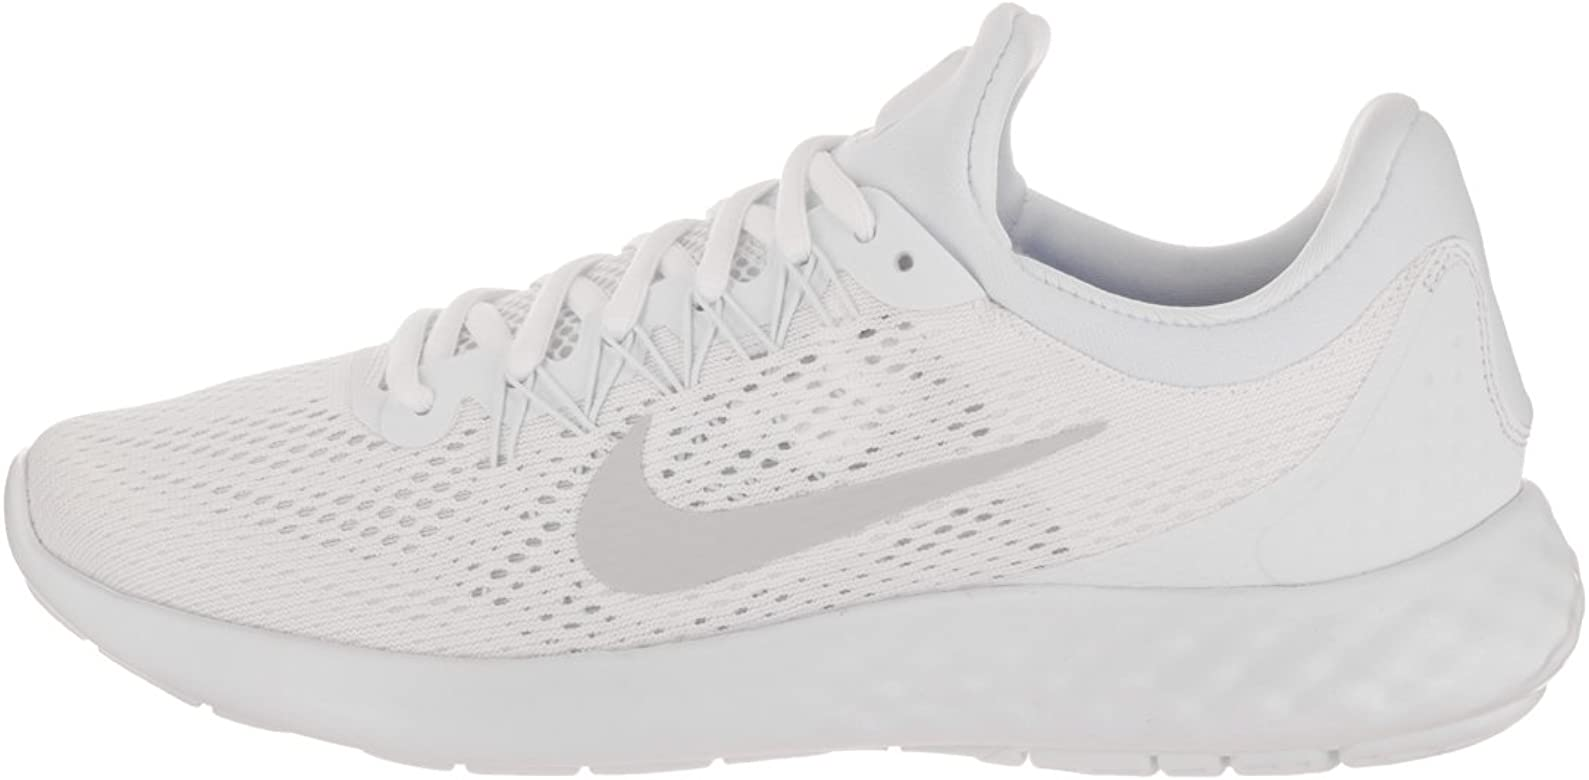 Nike - Performancelunar Skyelux - Zapatillas Neutras - White/Pure Platinum/offwhite: Amazon.es: Zapatos y complementos